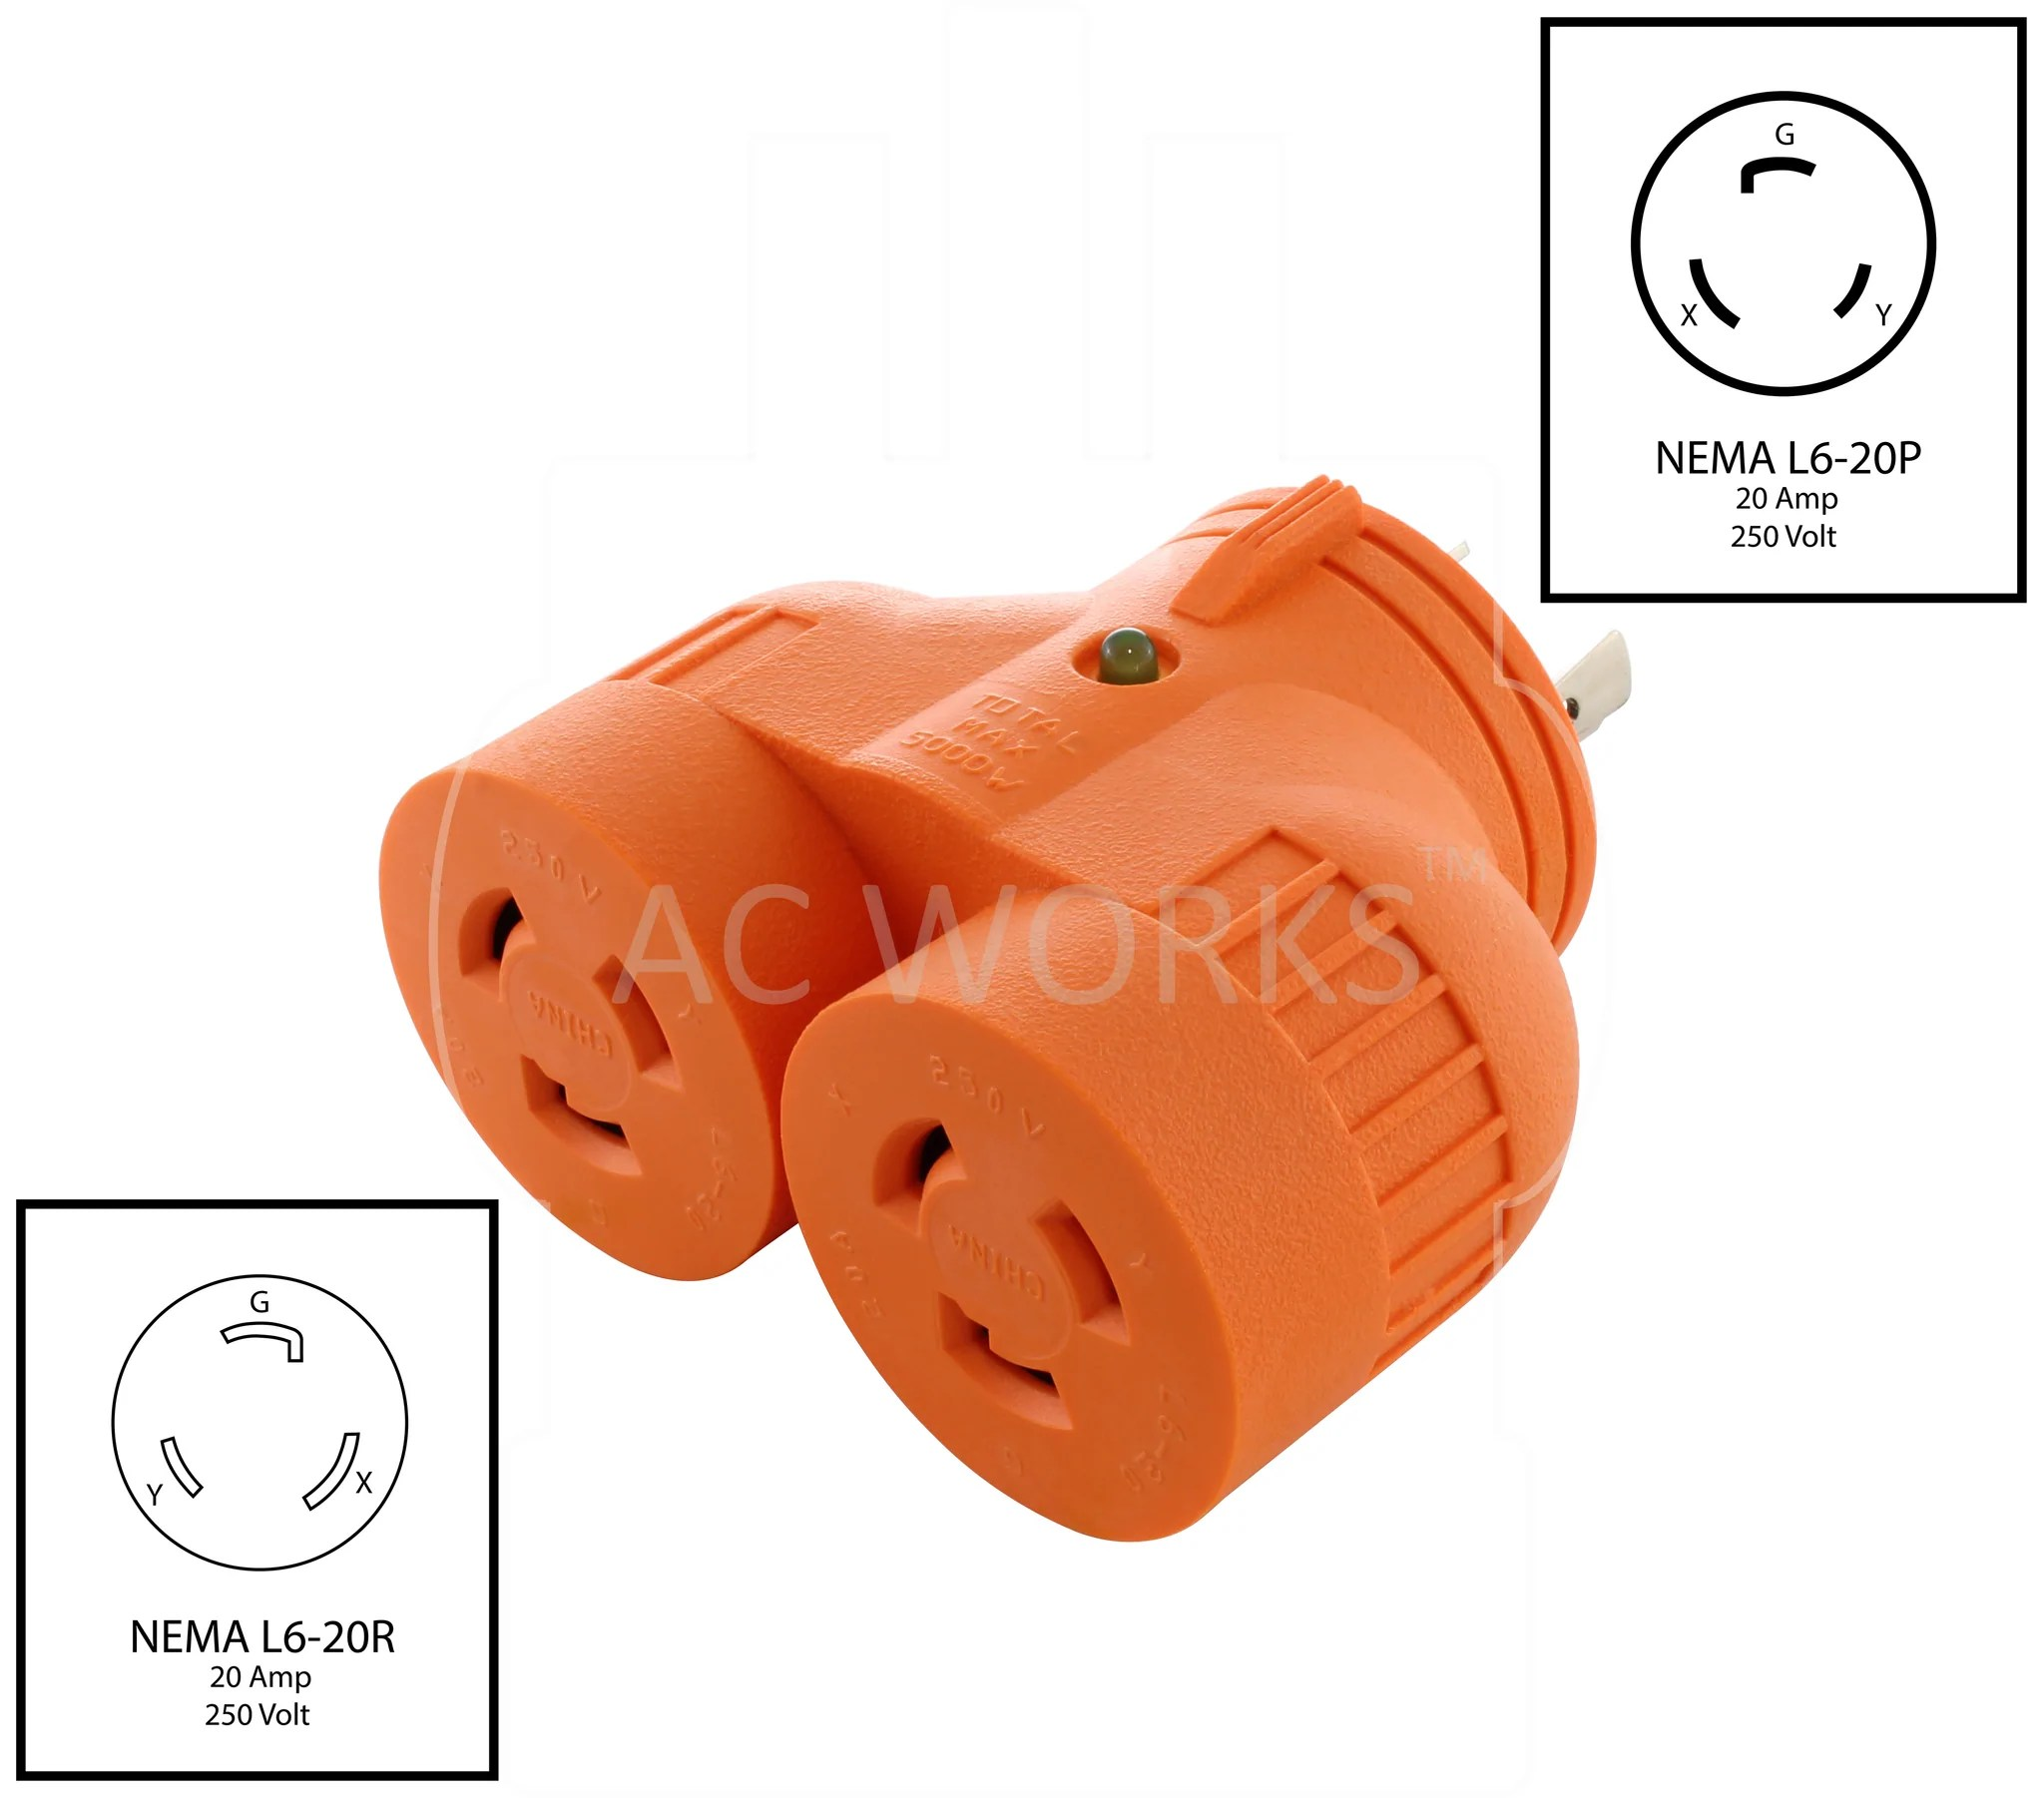 medium resolution of  nema l6 20p to nema l6 20r l620 plug to 2 l620 connectors